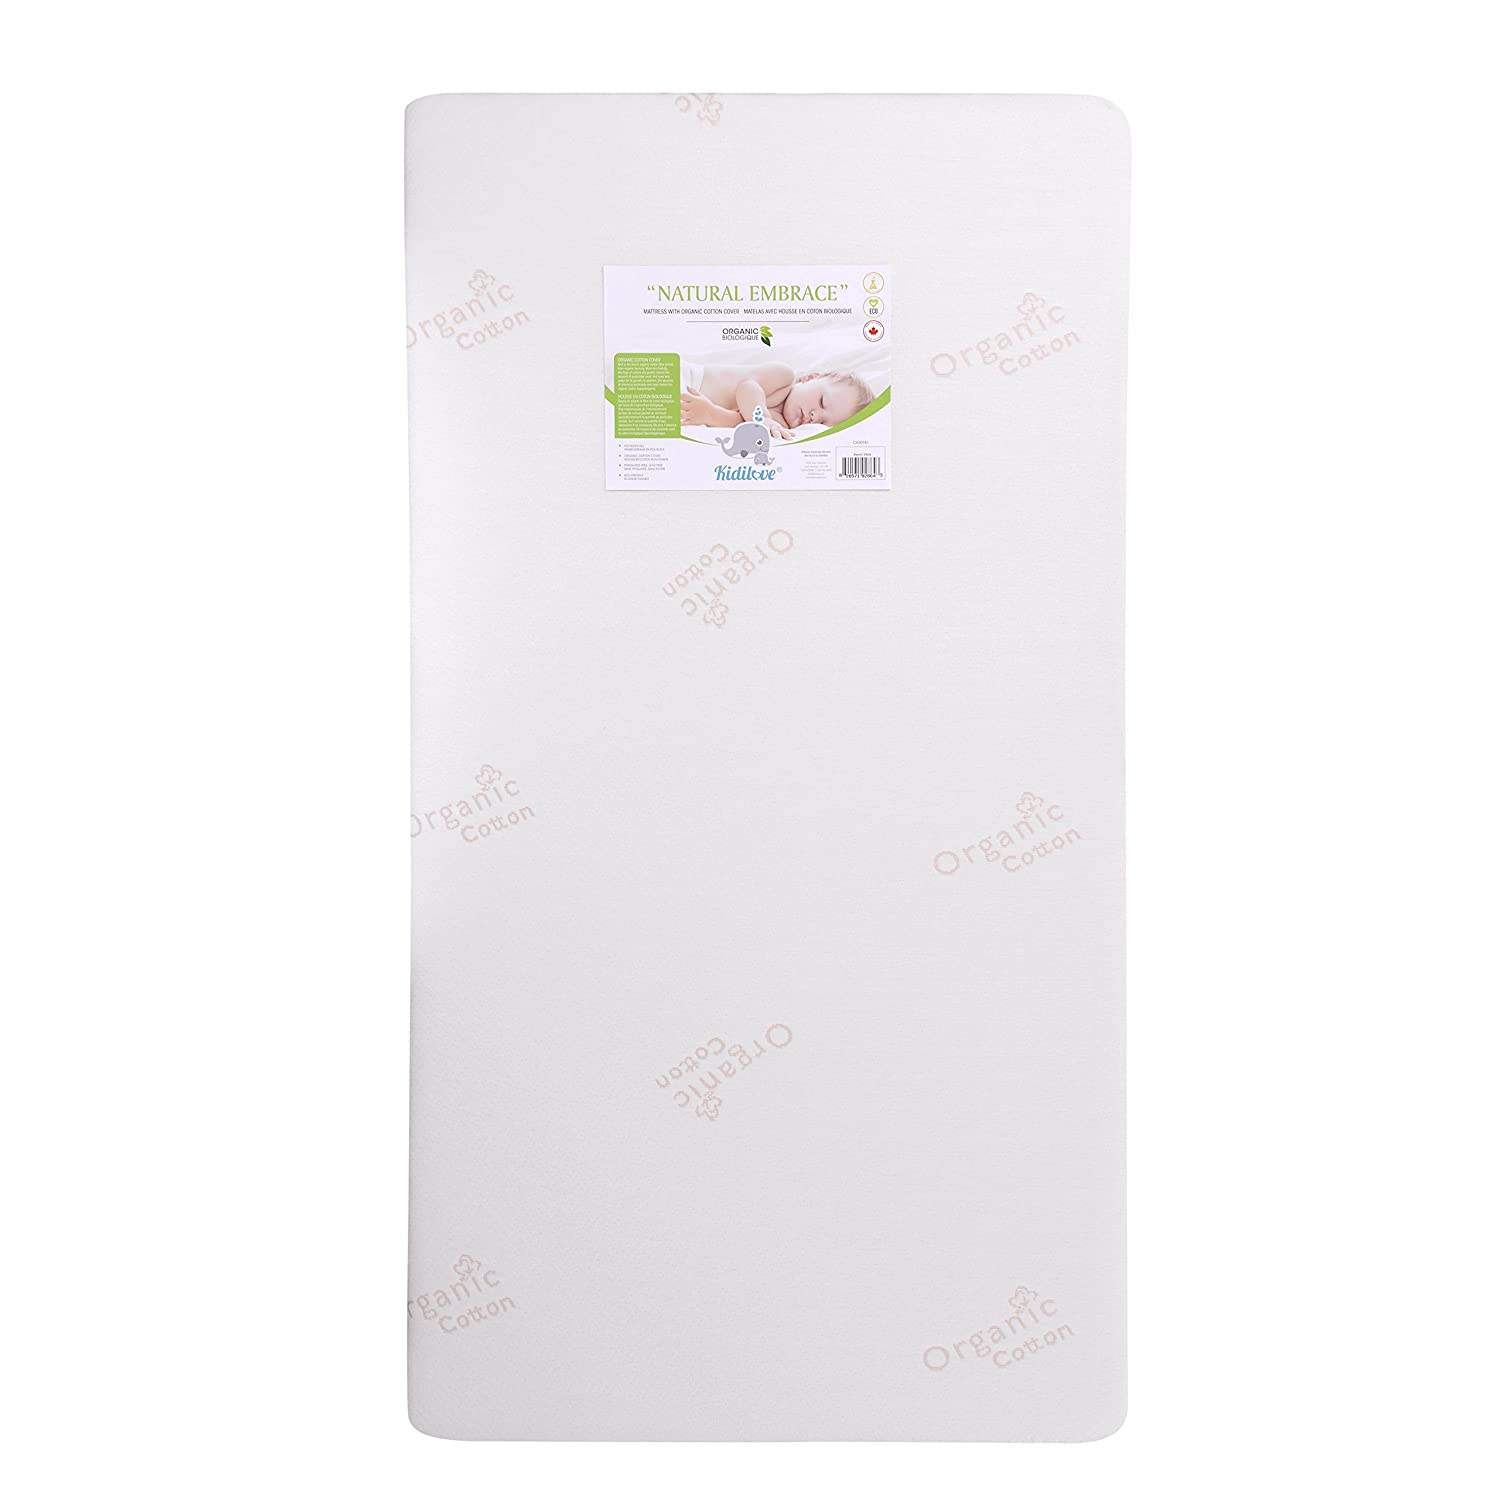 Kidiway 2864 Kidilove Natural Embrace Mattress - Organic Cotton Cover - Polyester Fill